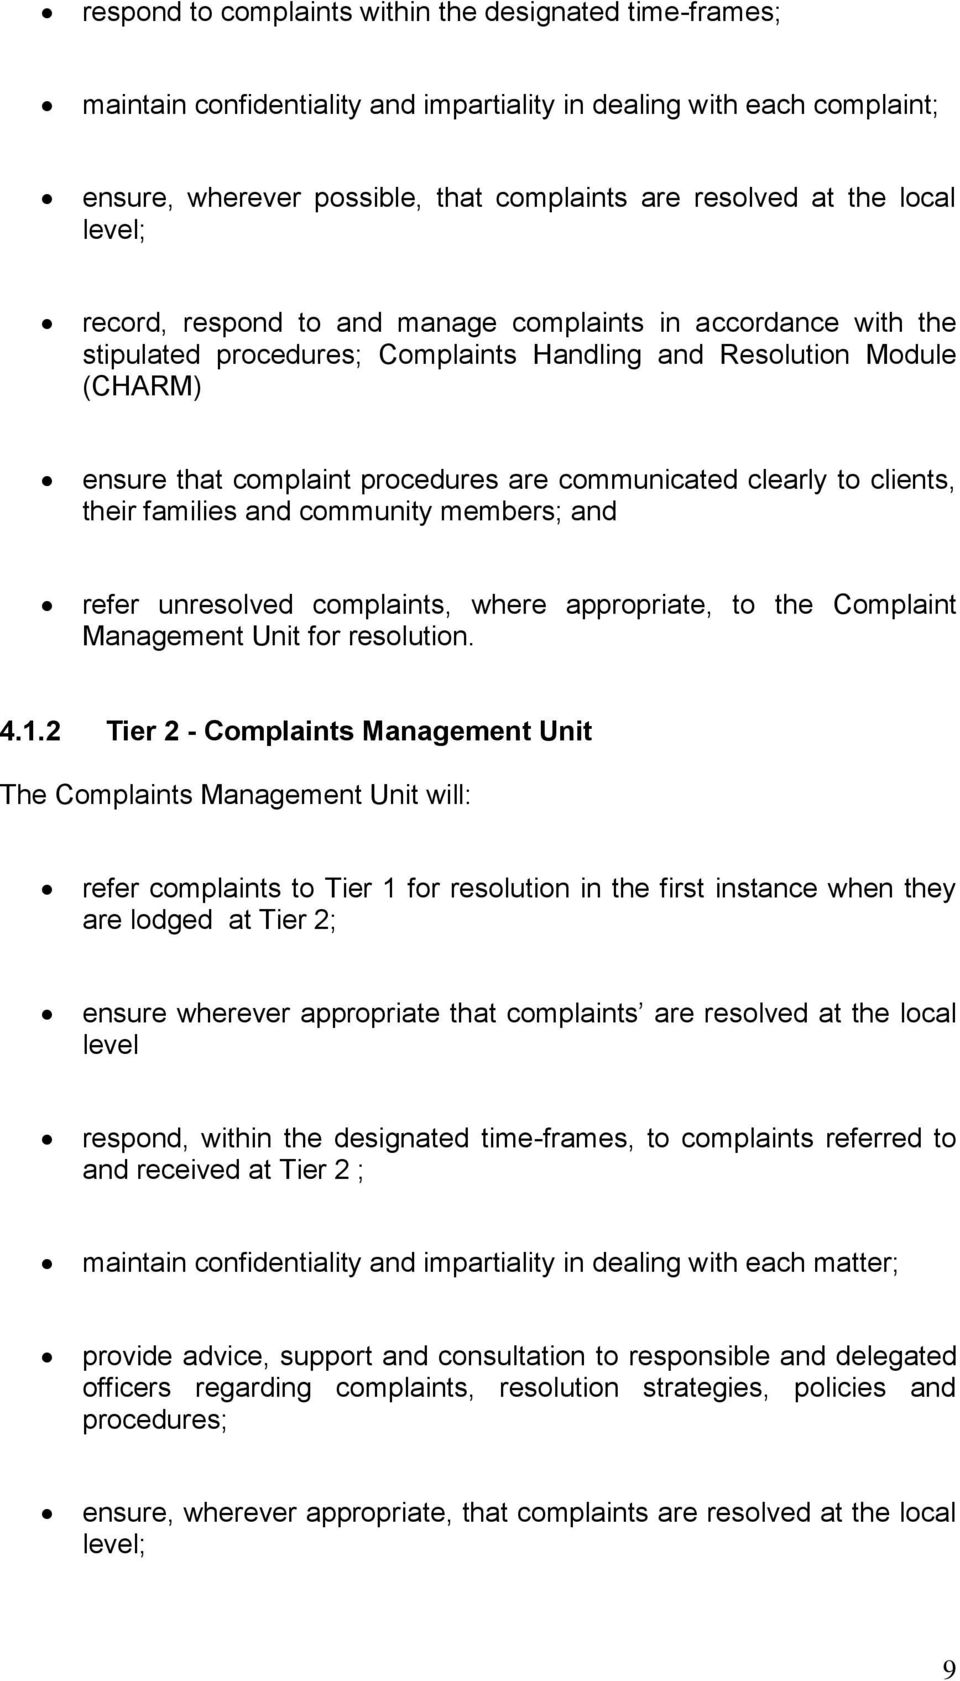 clearly to clients, their families and community members; and refer unresolved complaints, where appropriate, to the Complaint Management Unit for resolution. 4.1.